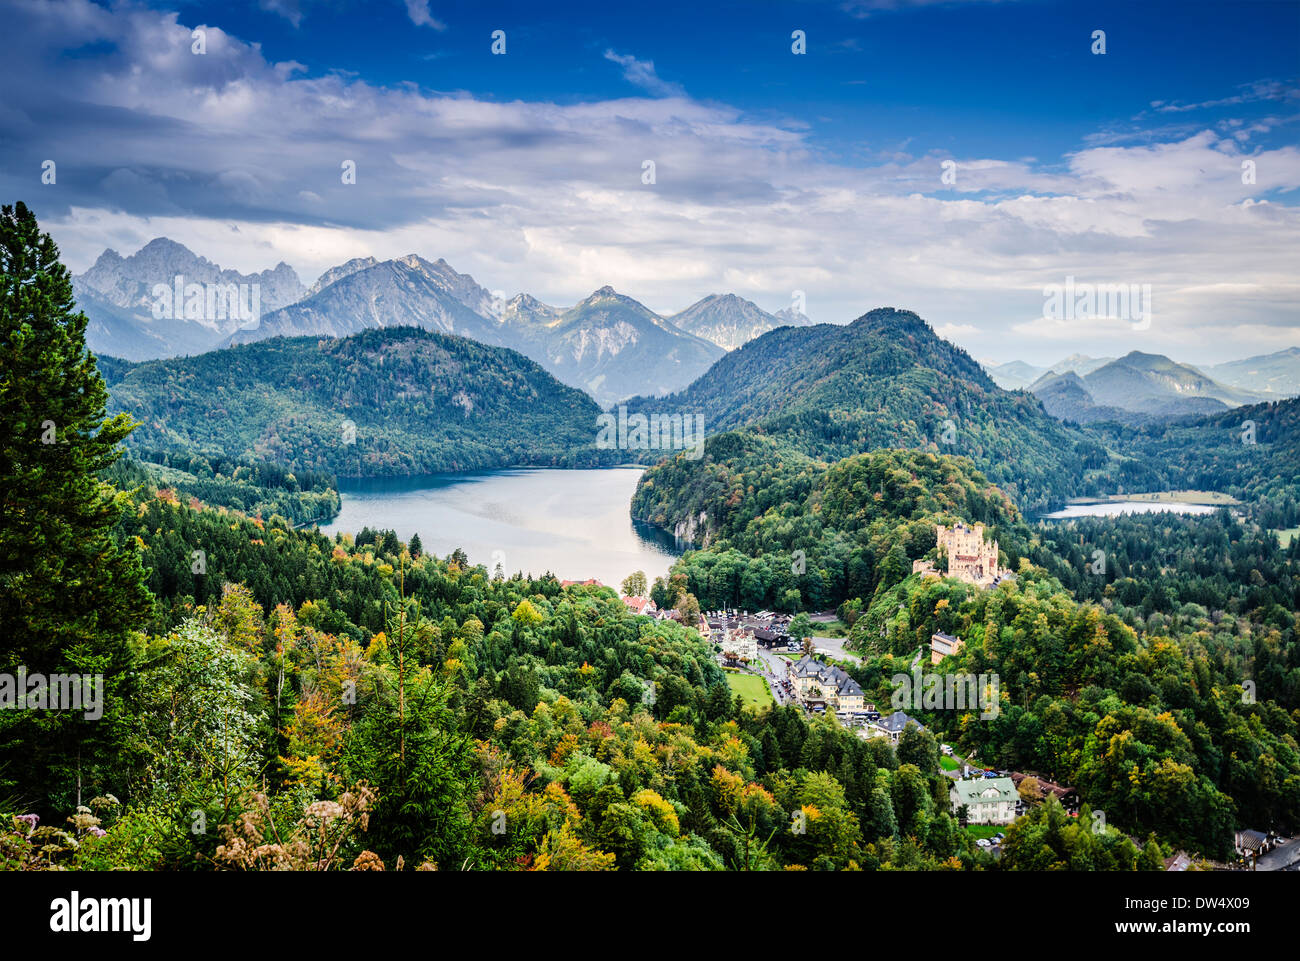 Bavarian Alps of Germany at Hohenschwangau Village and Lake Alpsee. - Stock Image